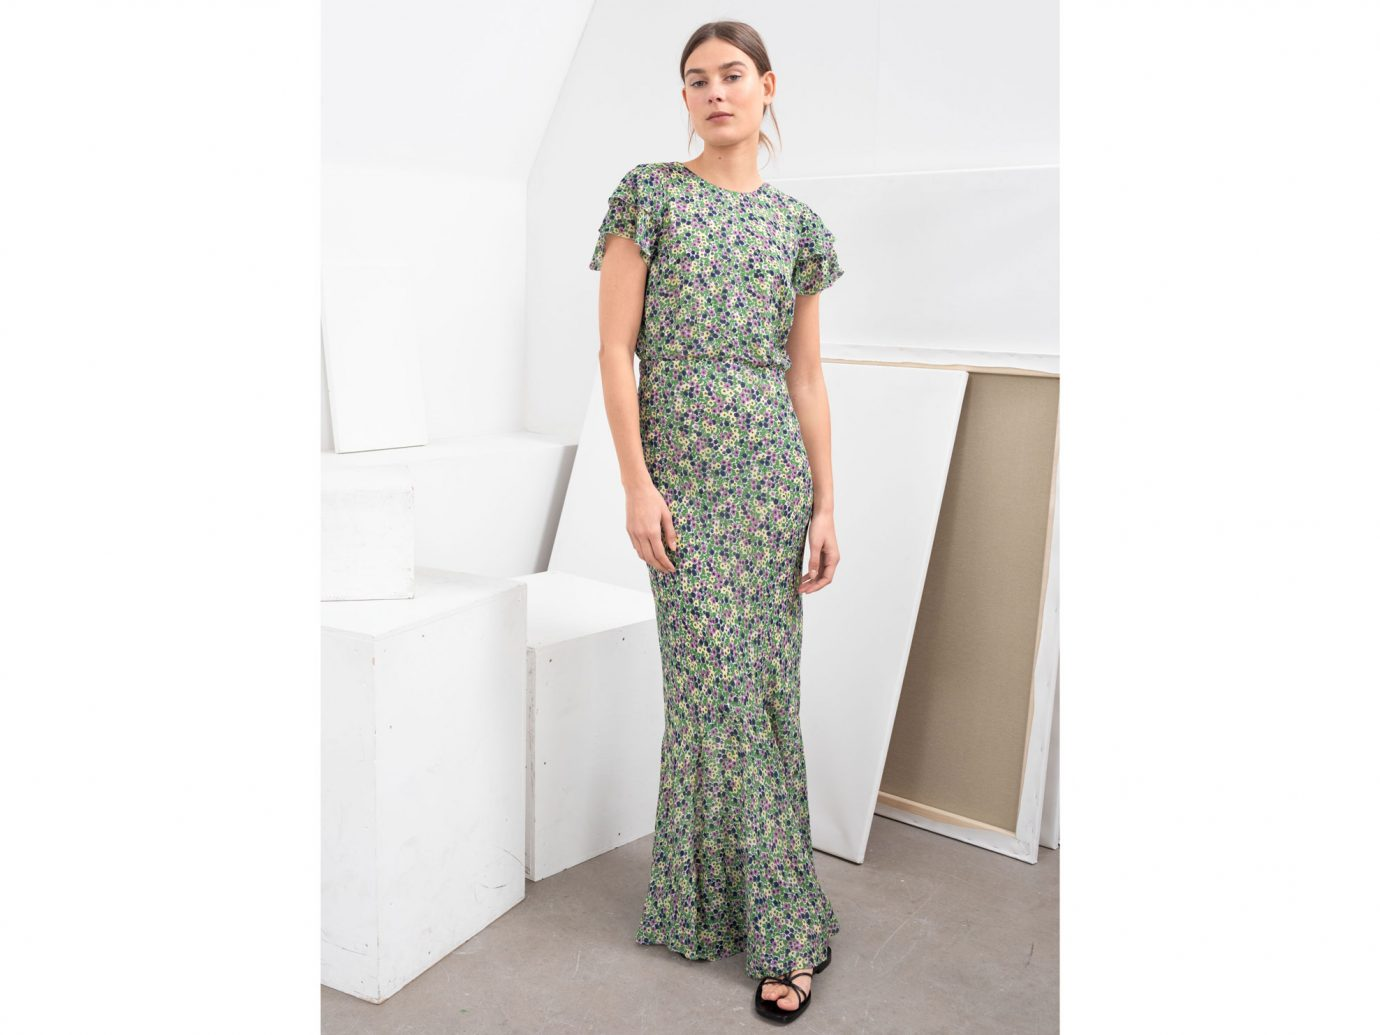 & Other Stories Ruffled Floral Maxi Dress